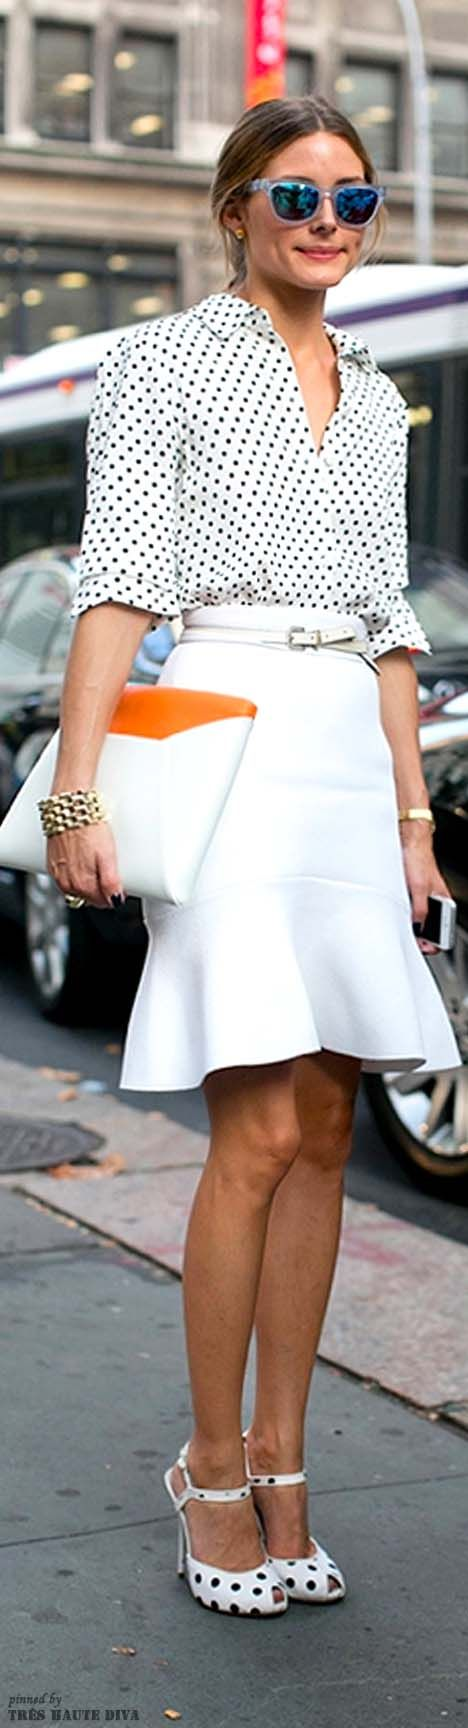 black and white polka dots with a pop of orange (street style #NYFW '14)